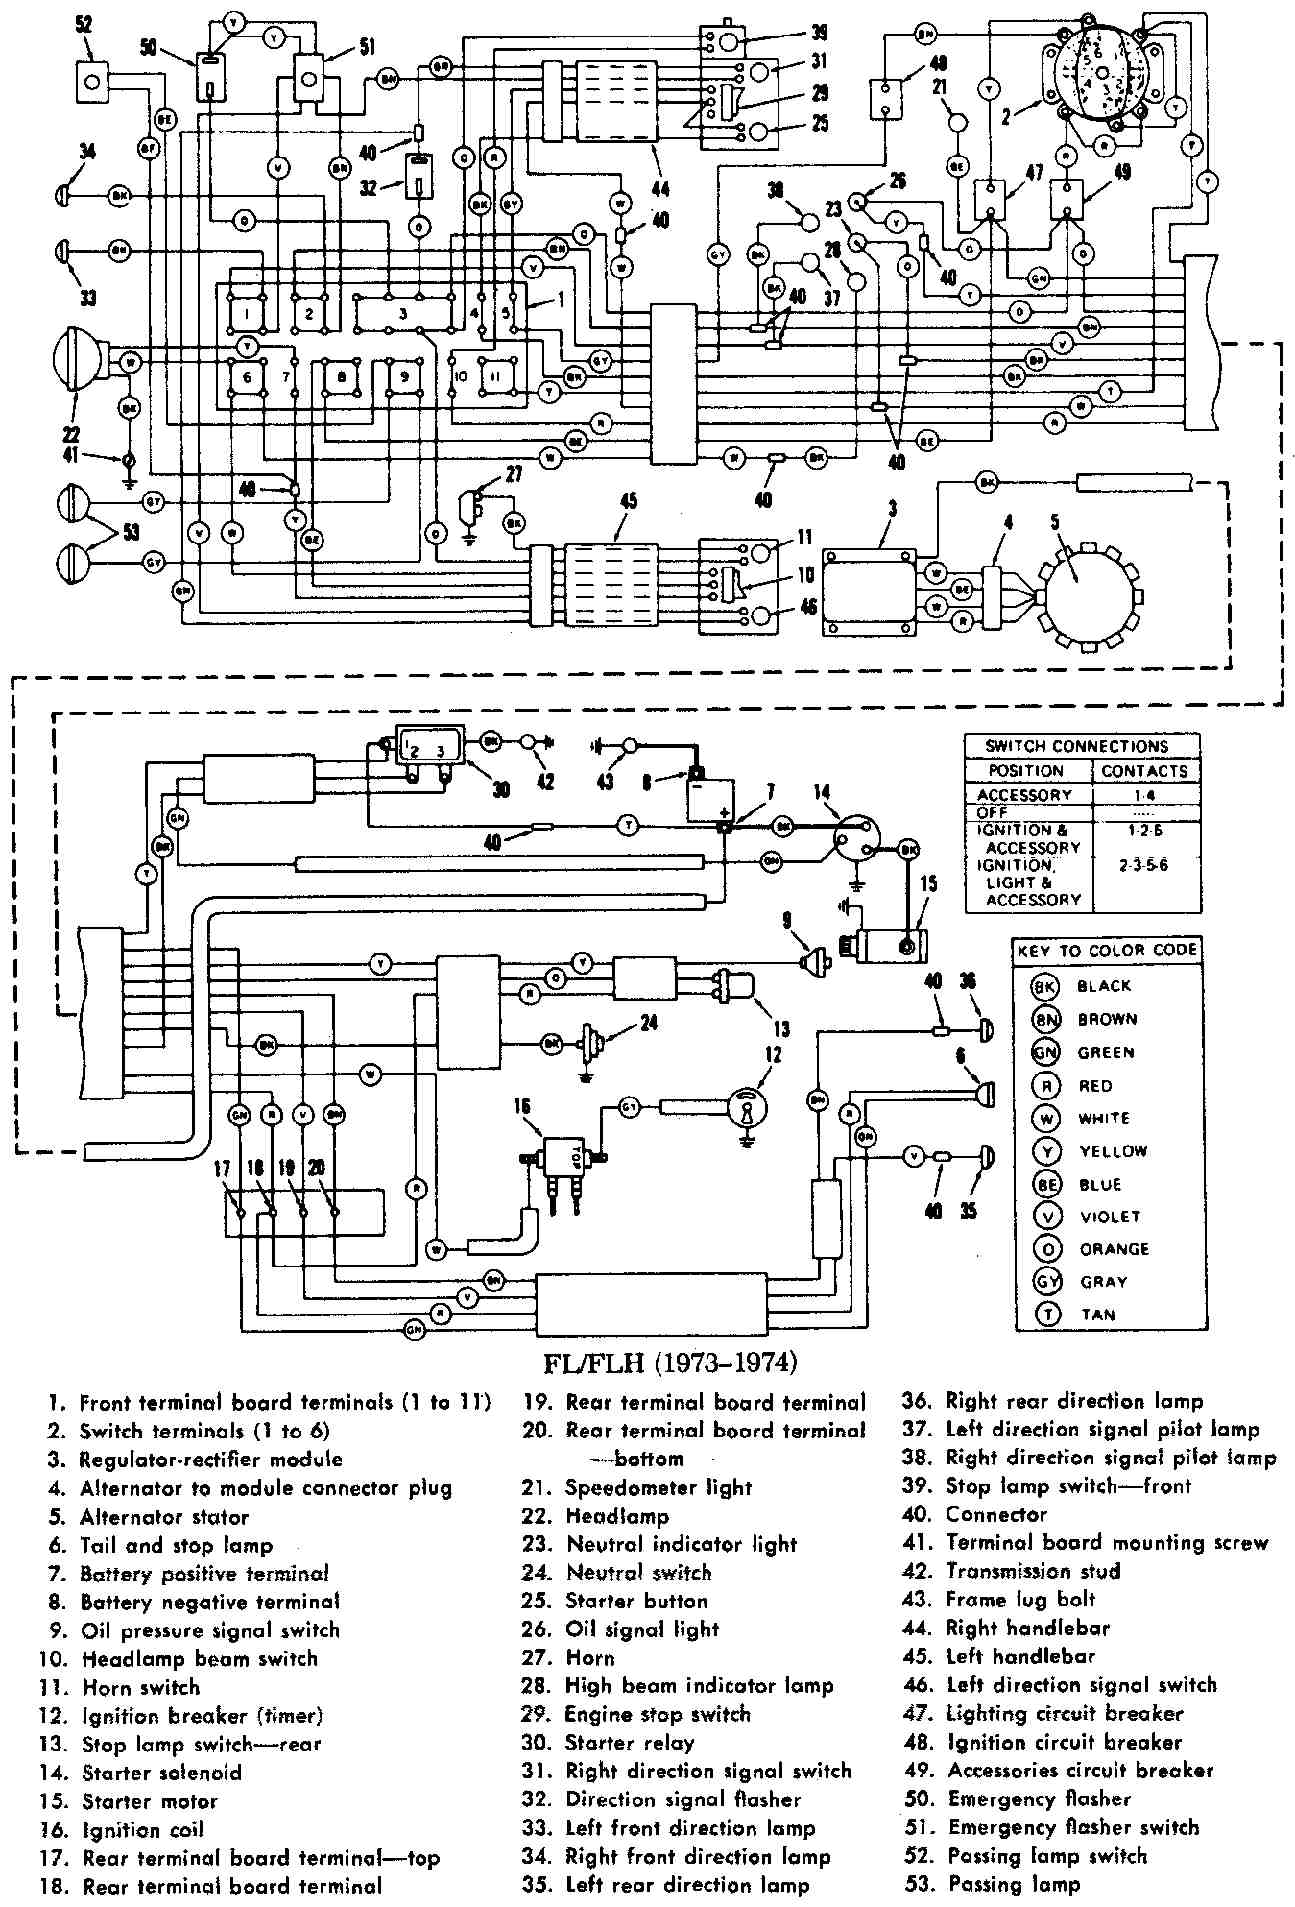 Electra Glide Rear Wiring Diagram on people that in suite glide, floorboards for 2001 wide glide, 2012 cvo road glide, motorcycle stereos for road glide, best seat for 2013 road glide, hd road glide, street glide, biker's choice 2006 road glide, hop up 2008 road glide, corbin solo seat road glide, 2015 road glide, floorboards for road glide, 91 road glide, madstad windshield road glide, 2010 wide glide,